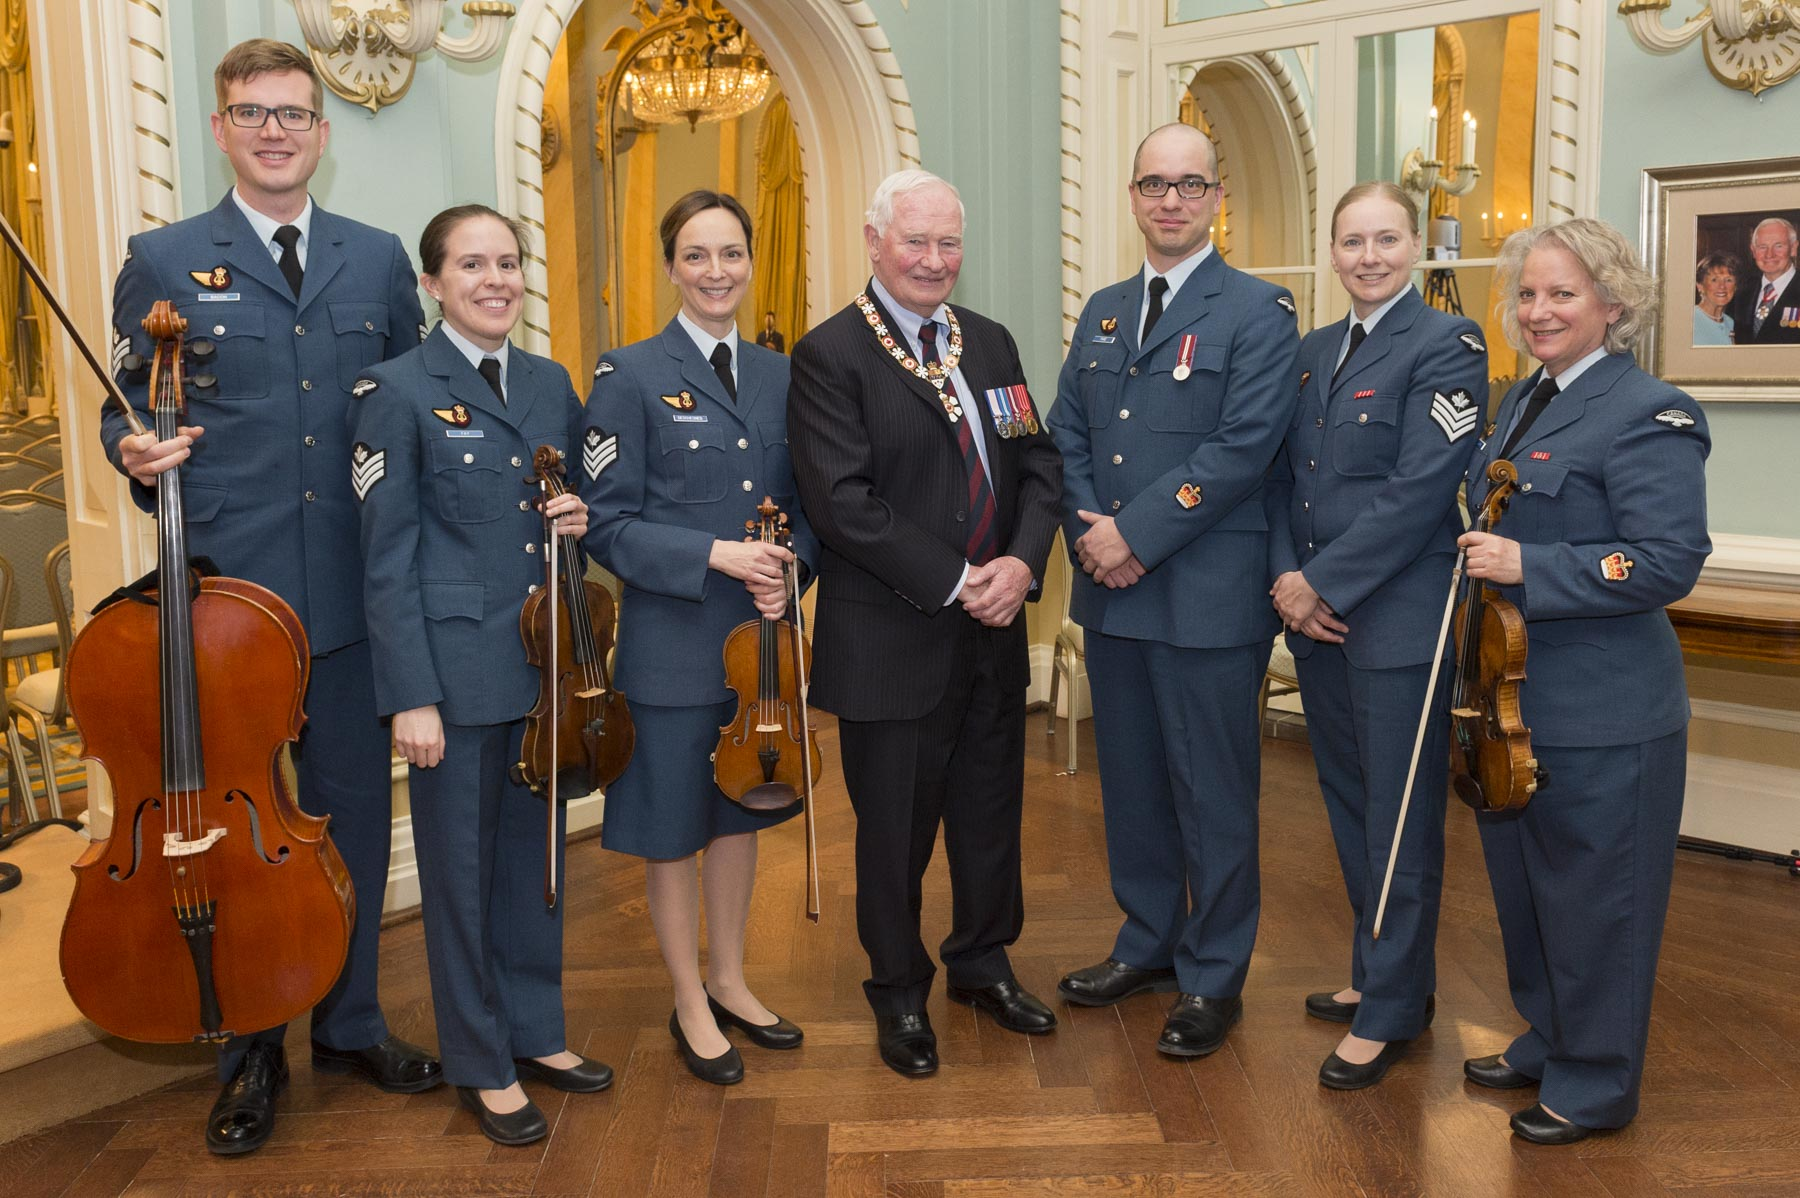 The Governor General posed for a photo with Warrant Officer Simon Paré and the Canadian Armed Forces String Ensemble.